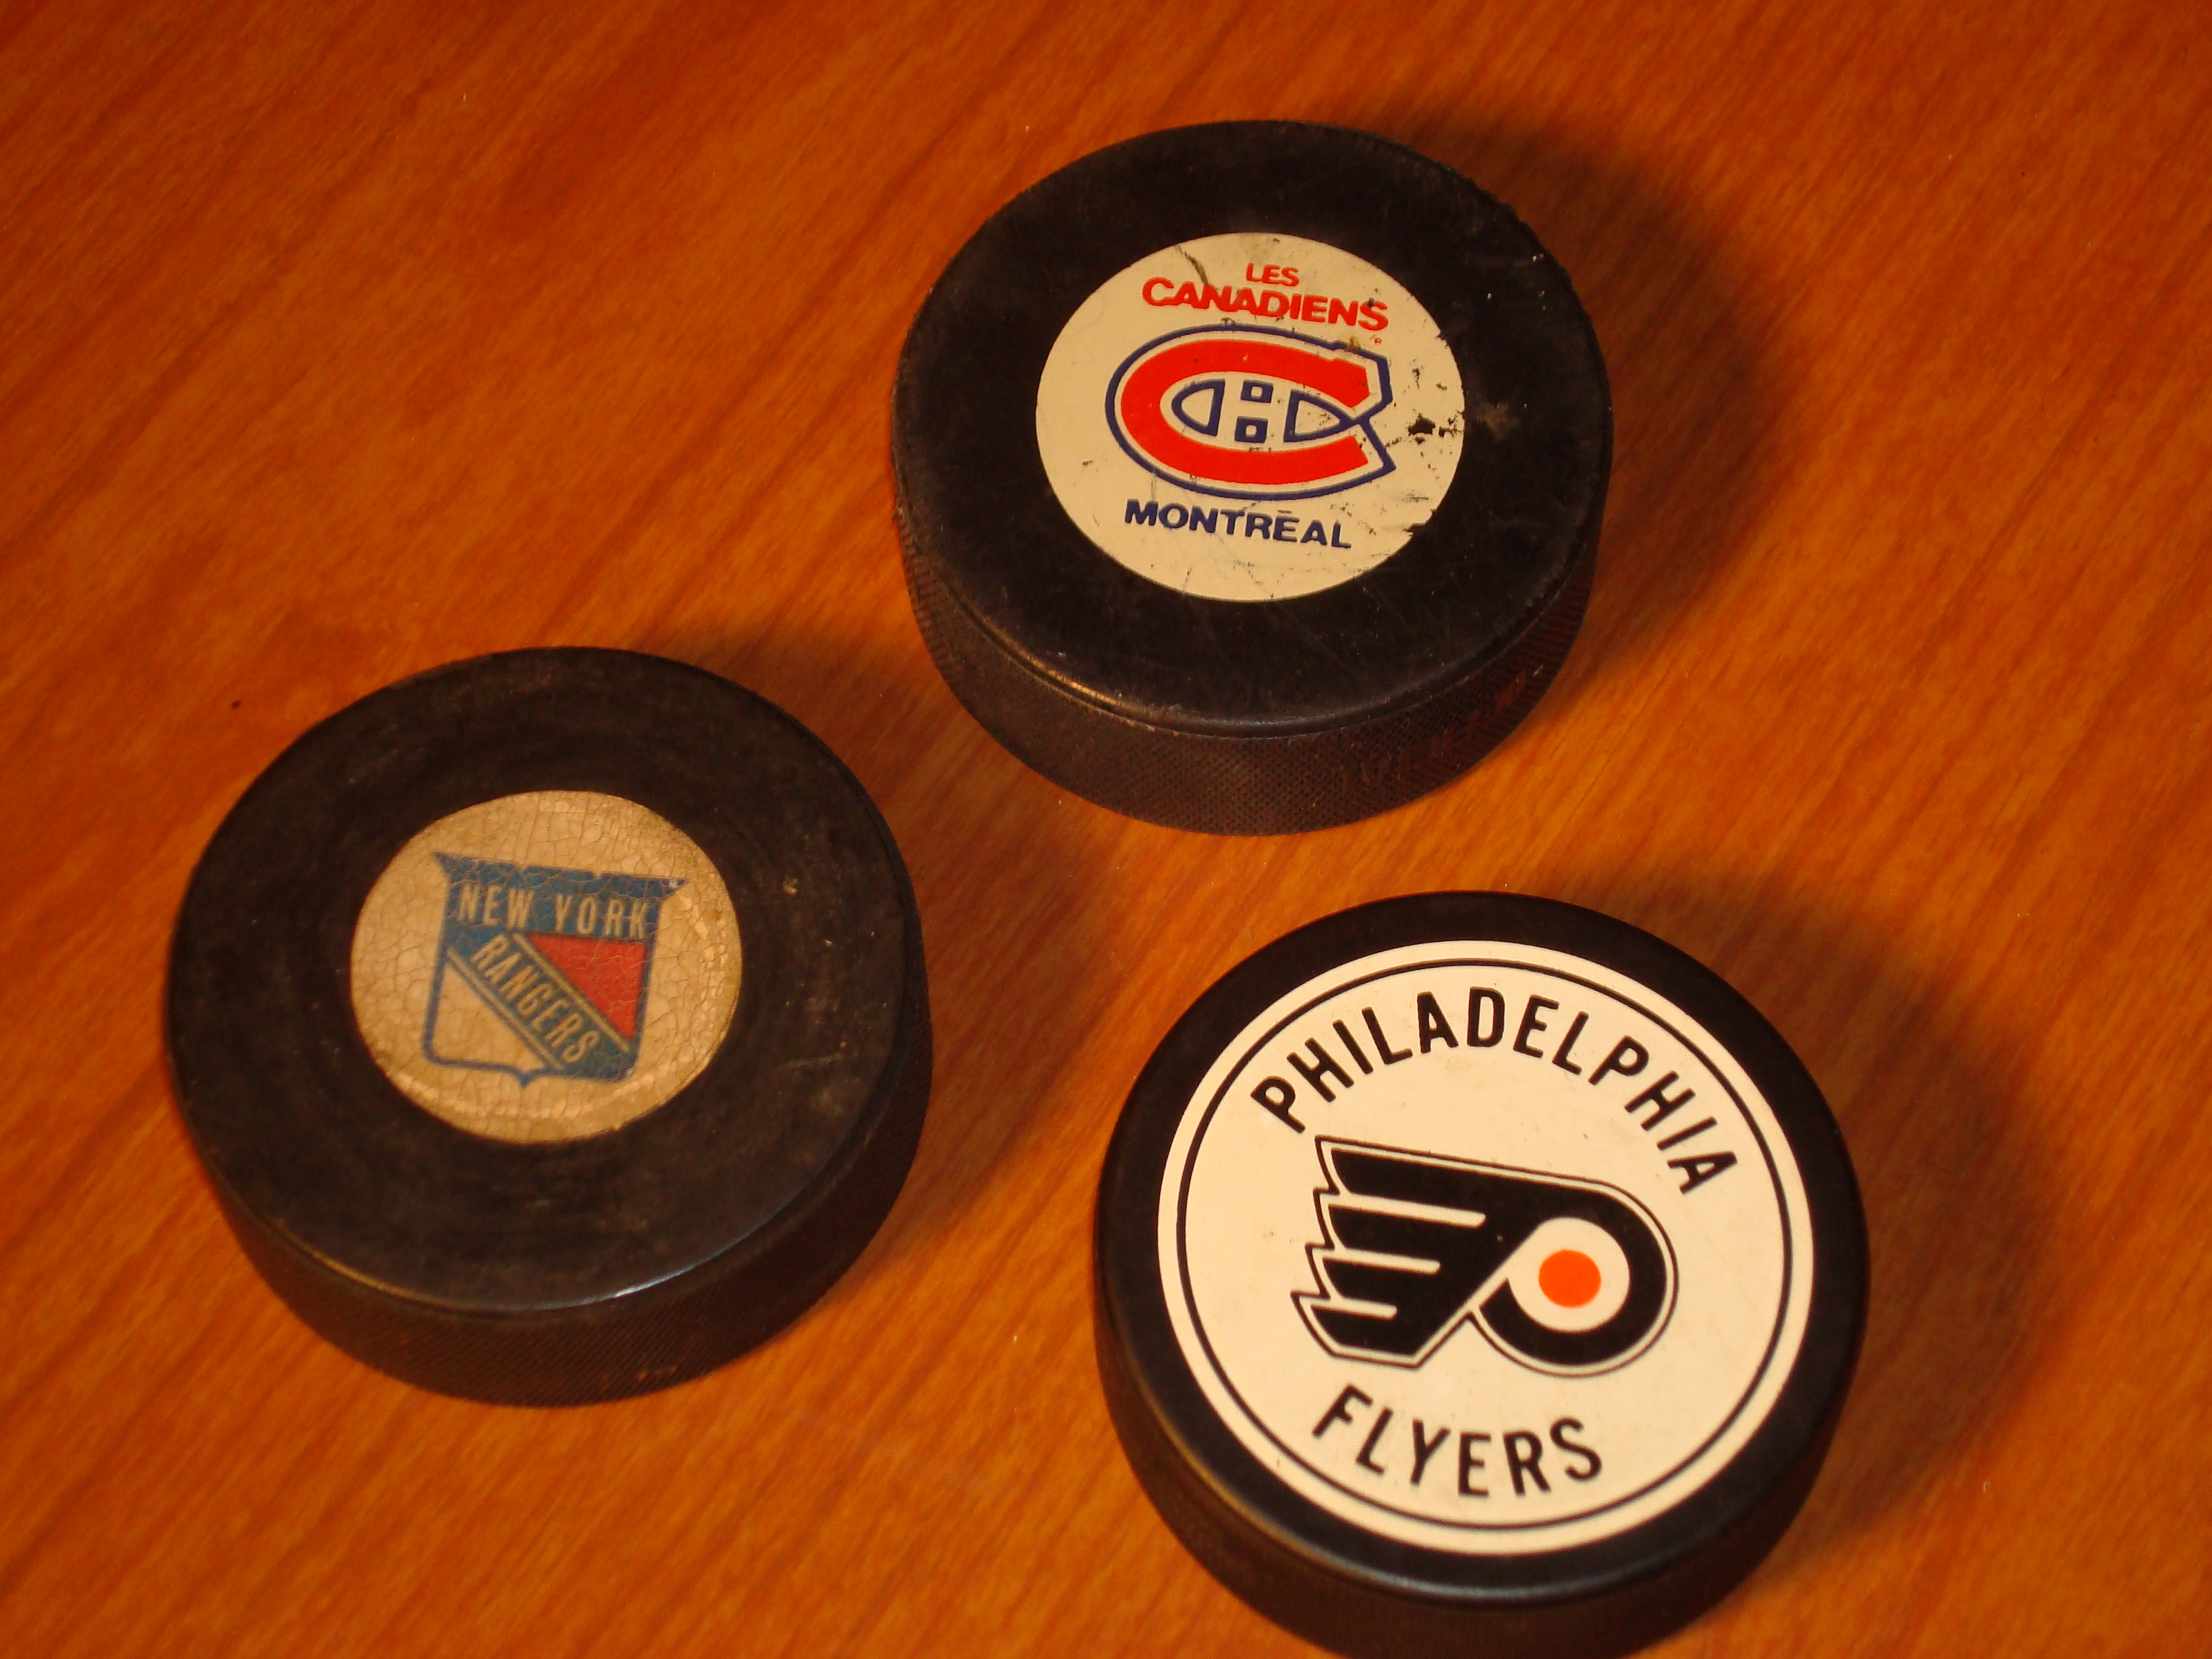 Official Pucks 1981 NFL New York Rangers, Les Canandiens Montreal & the Philadelphia Flyers